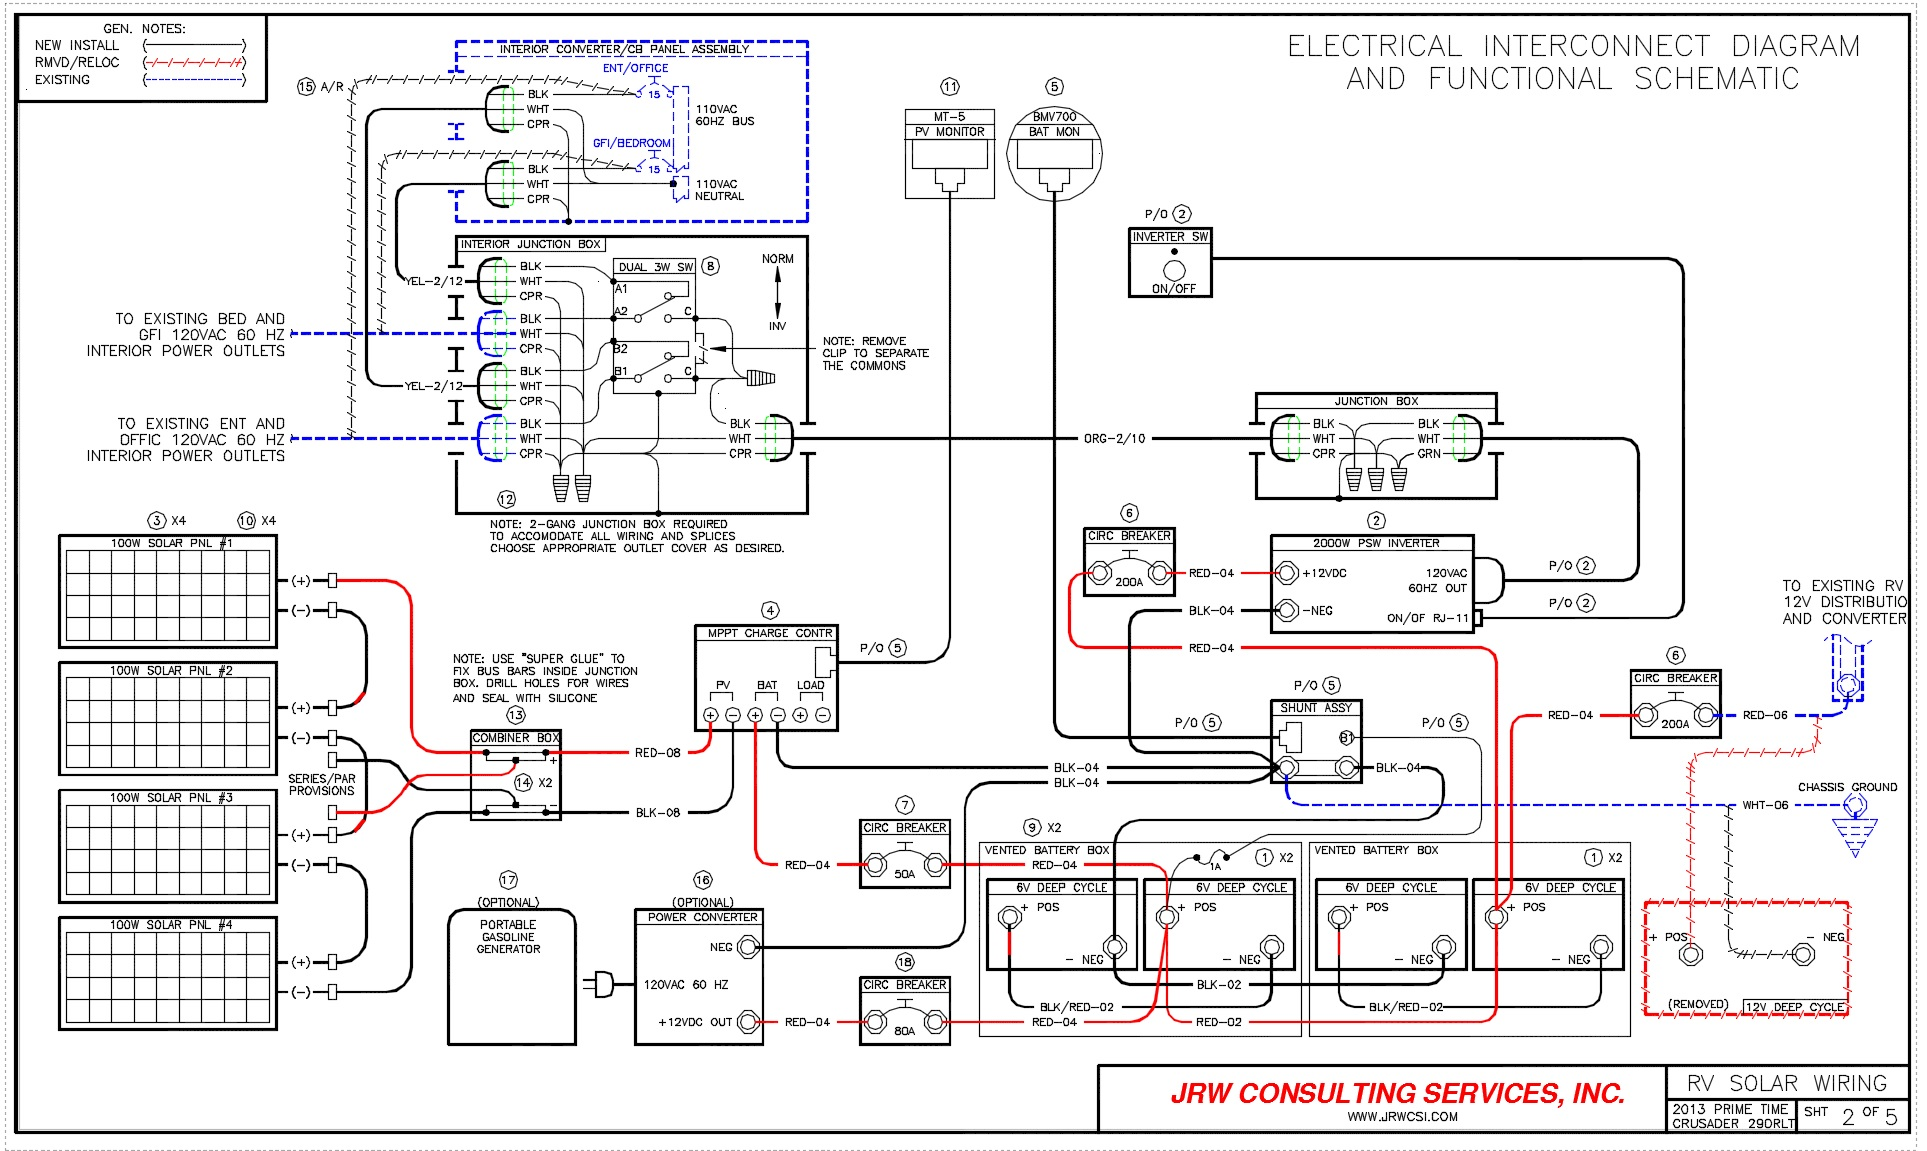 RV SOLAR SHT 22 rv monitor panel wiring diagram rv electrical system wiring rv wiring systems at eliteediting.co